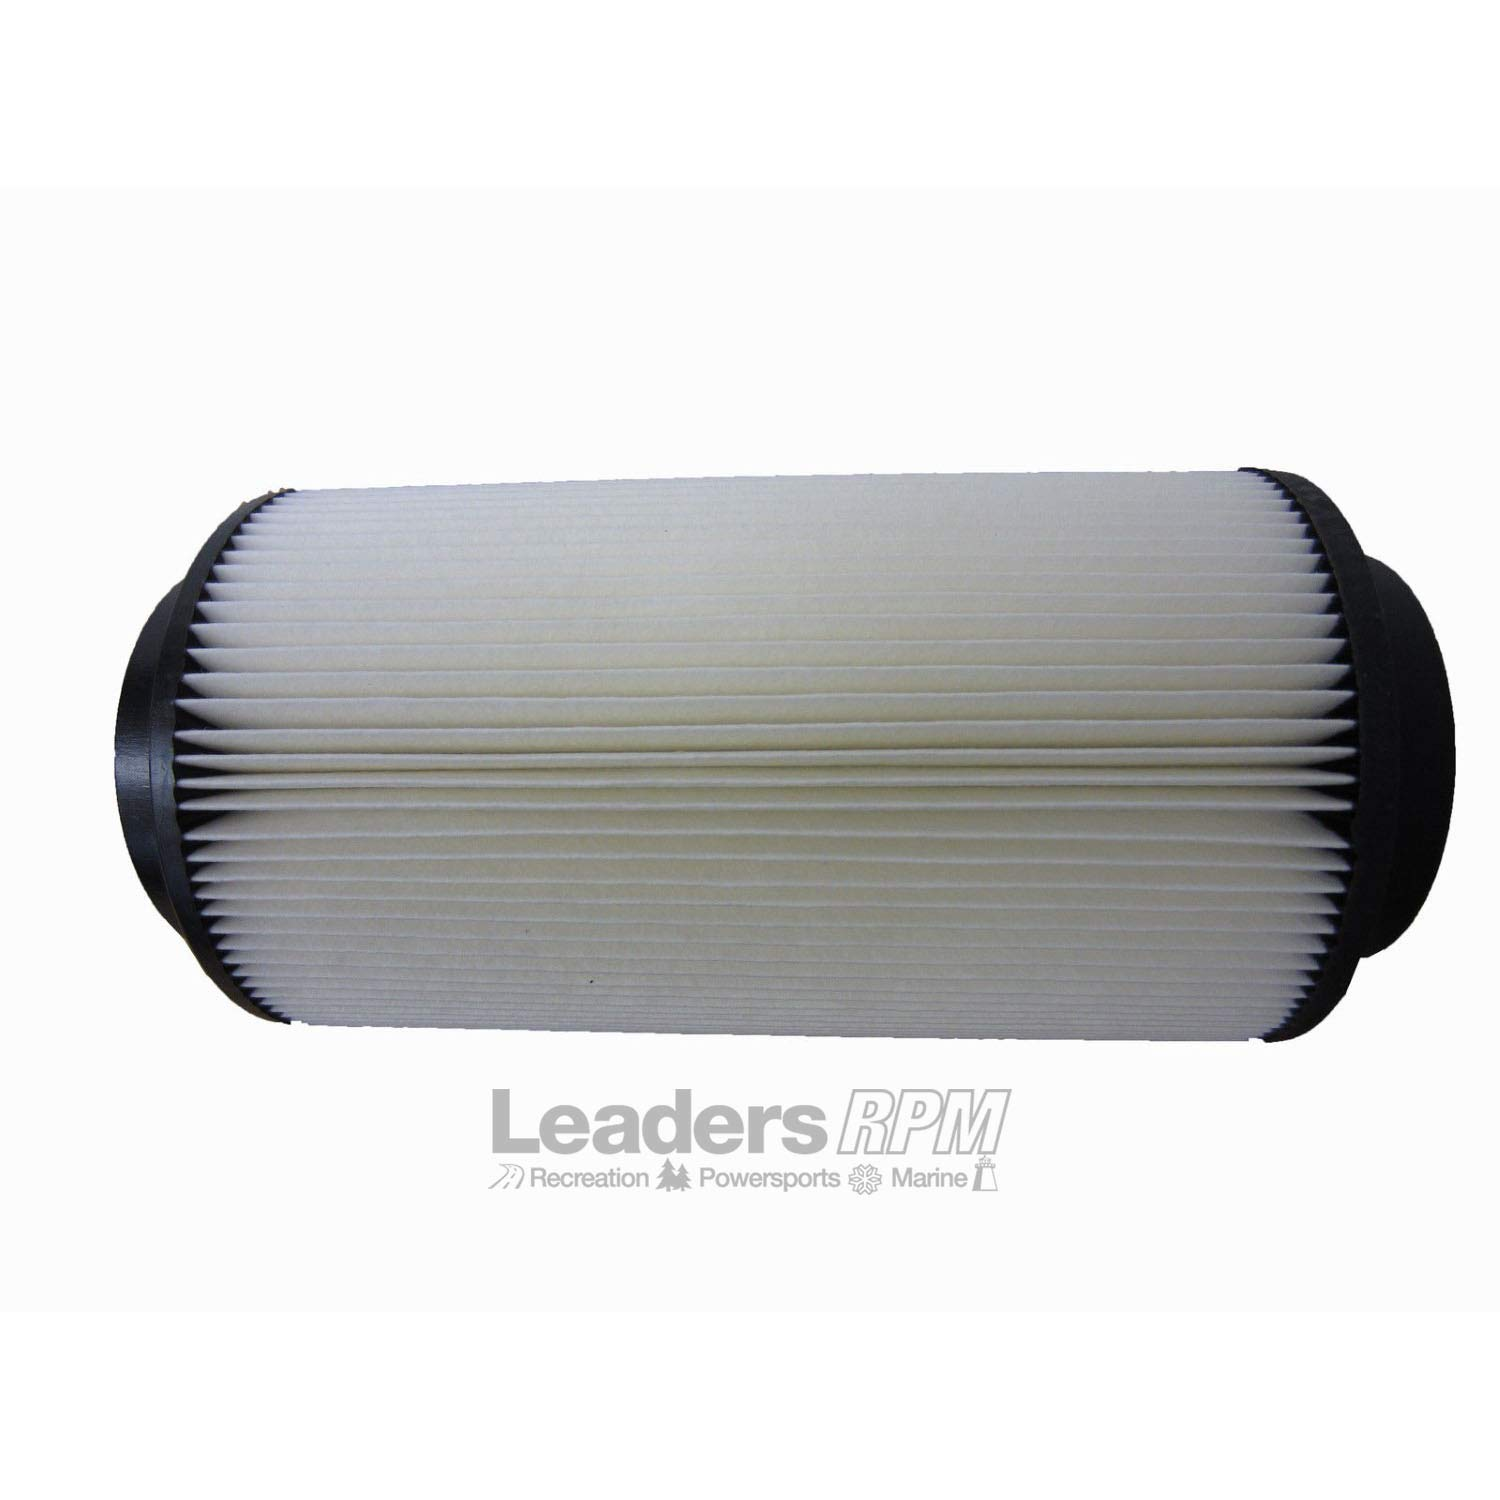 New Polaris Oem Air Filter 7080595 Automotive 2004 Sportsman 700 Fuel